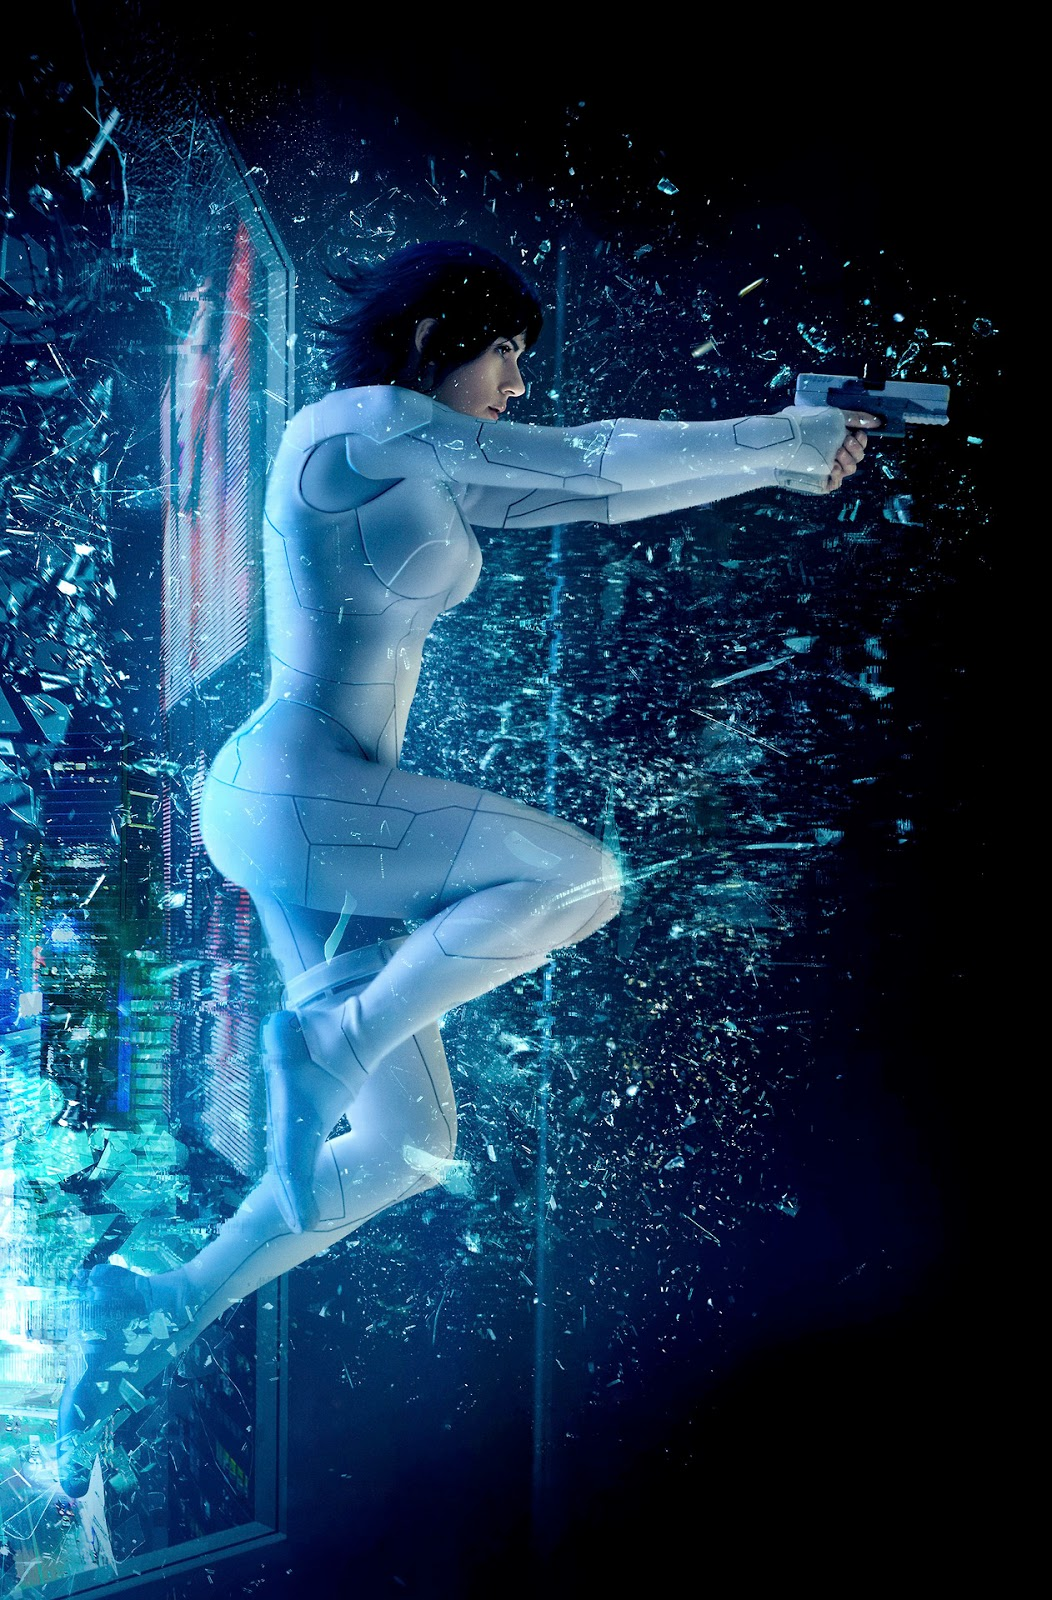 Scarlett Johansson's The Major, smashing through the glass wall to fight the enemies, a scene showing her performing superhuman feats, with superhuman strength, leaping between skyscrapers, advanced acrobatics and shooting down a bullet after it was fired at mid-range.